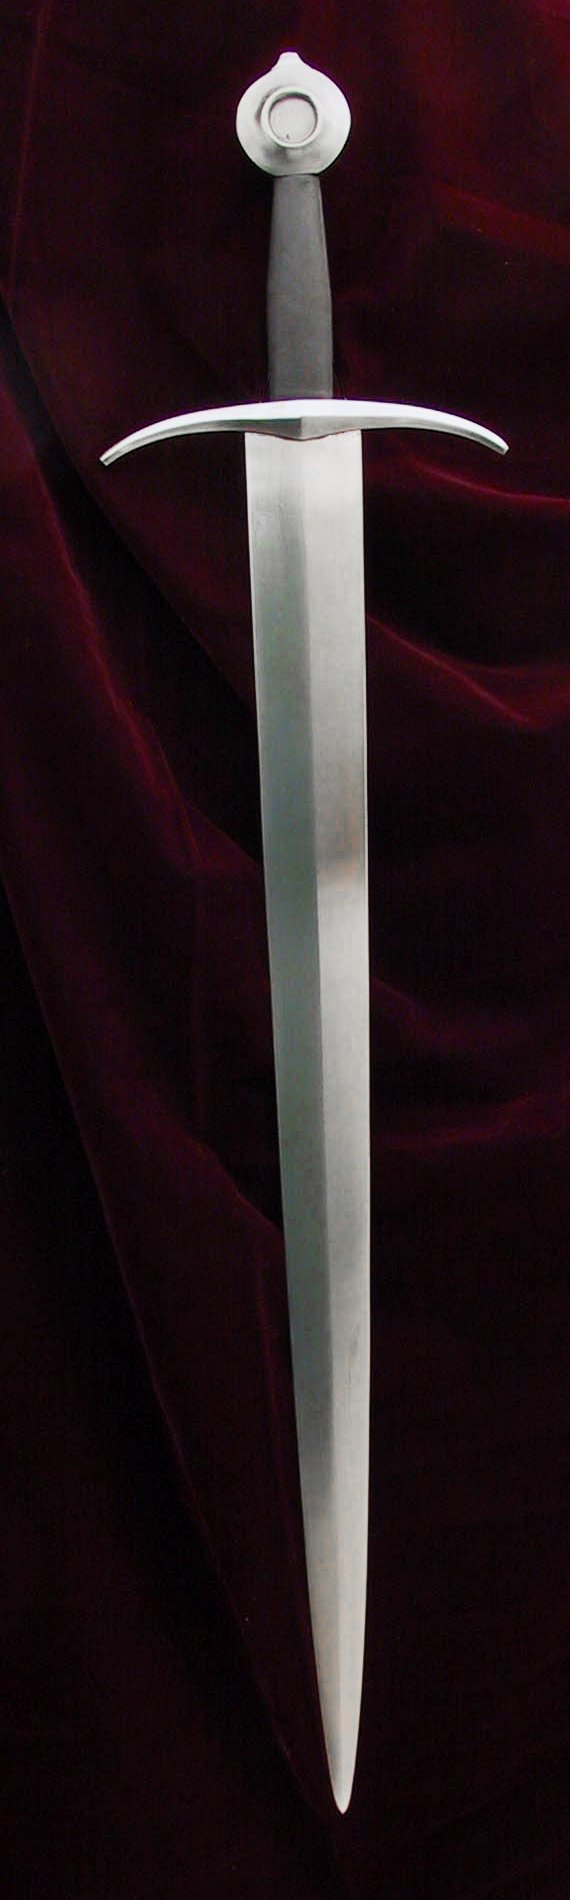 FRENCH MEDIEVAL ARMING SWORD - OAKESHOTT TYPE XV